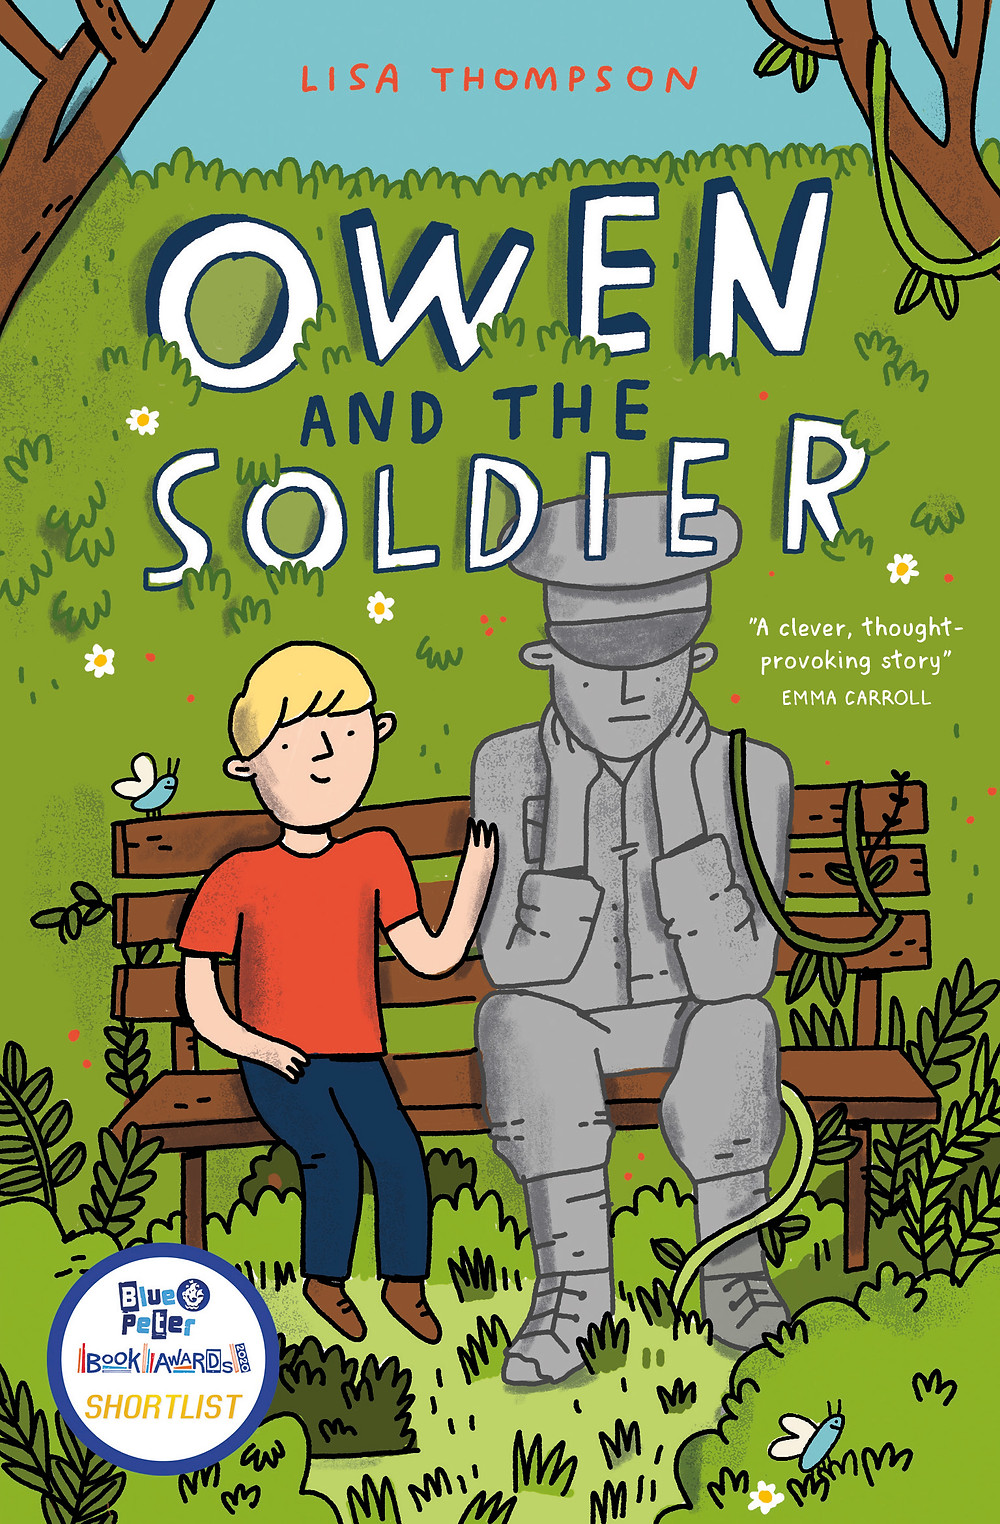 Owen and the Soldier, a book for dyslexic readers about family and friendship